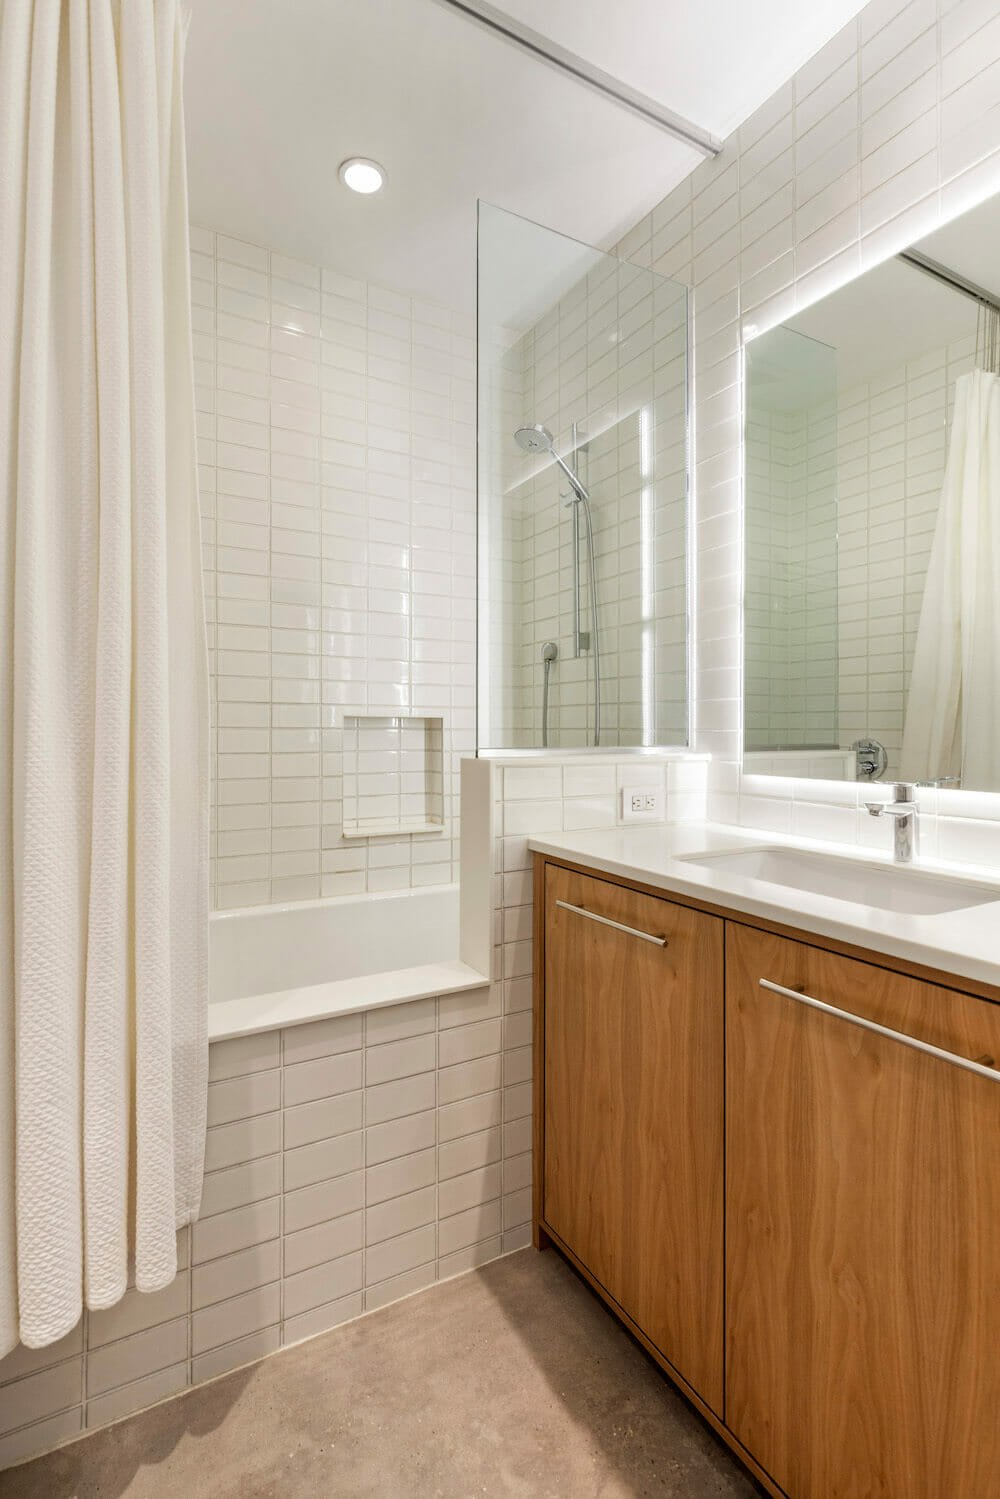 Bathroom with a white subway tile soaking tub and poured concrete floor